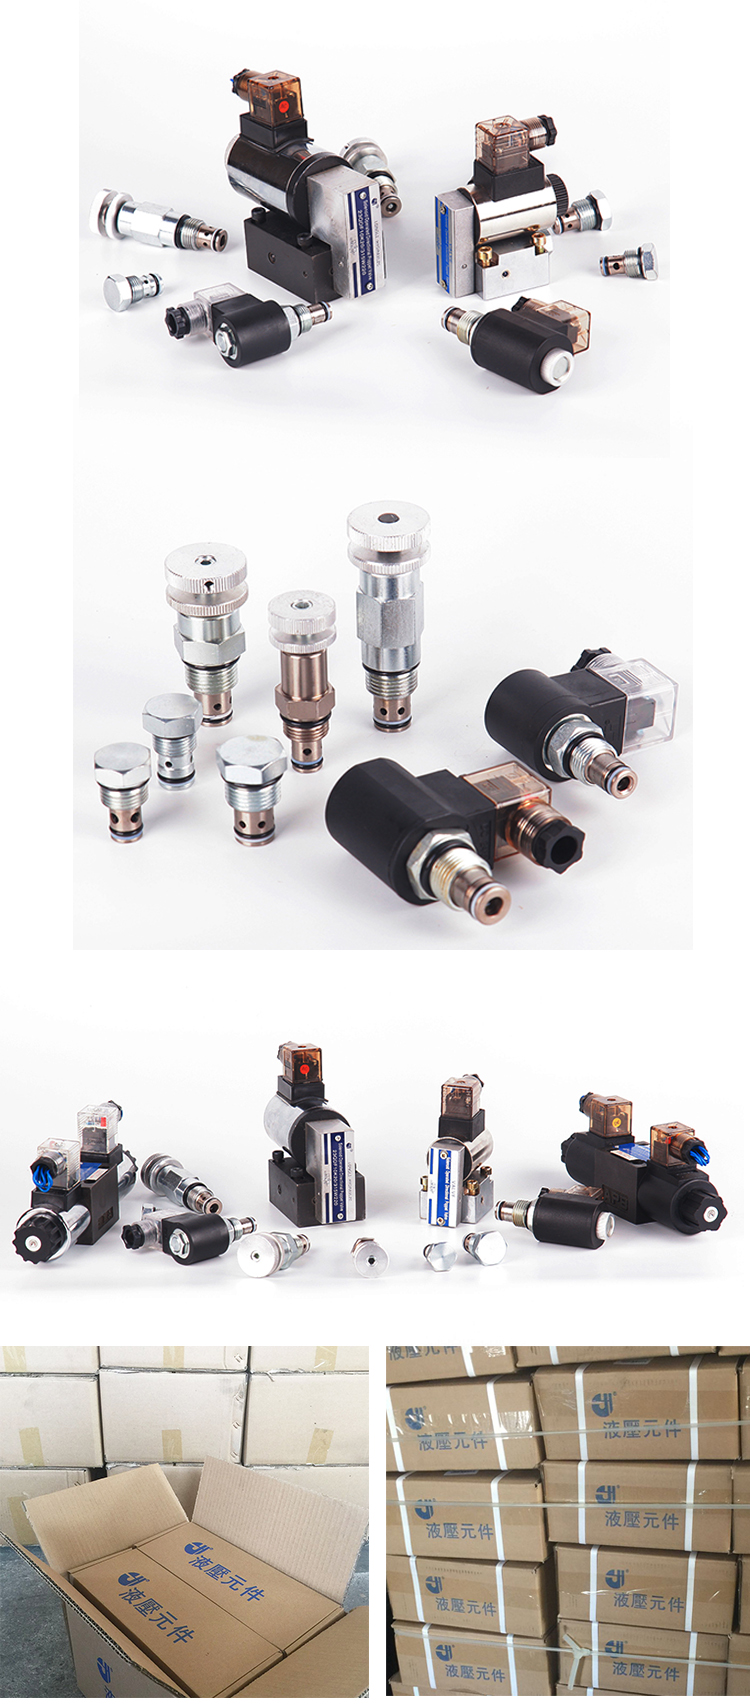 SV08-34M Hydraulic Hydraforce type cartridge high pressure 3 position 4 way double coil valve